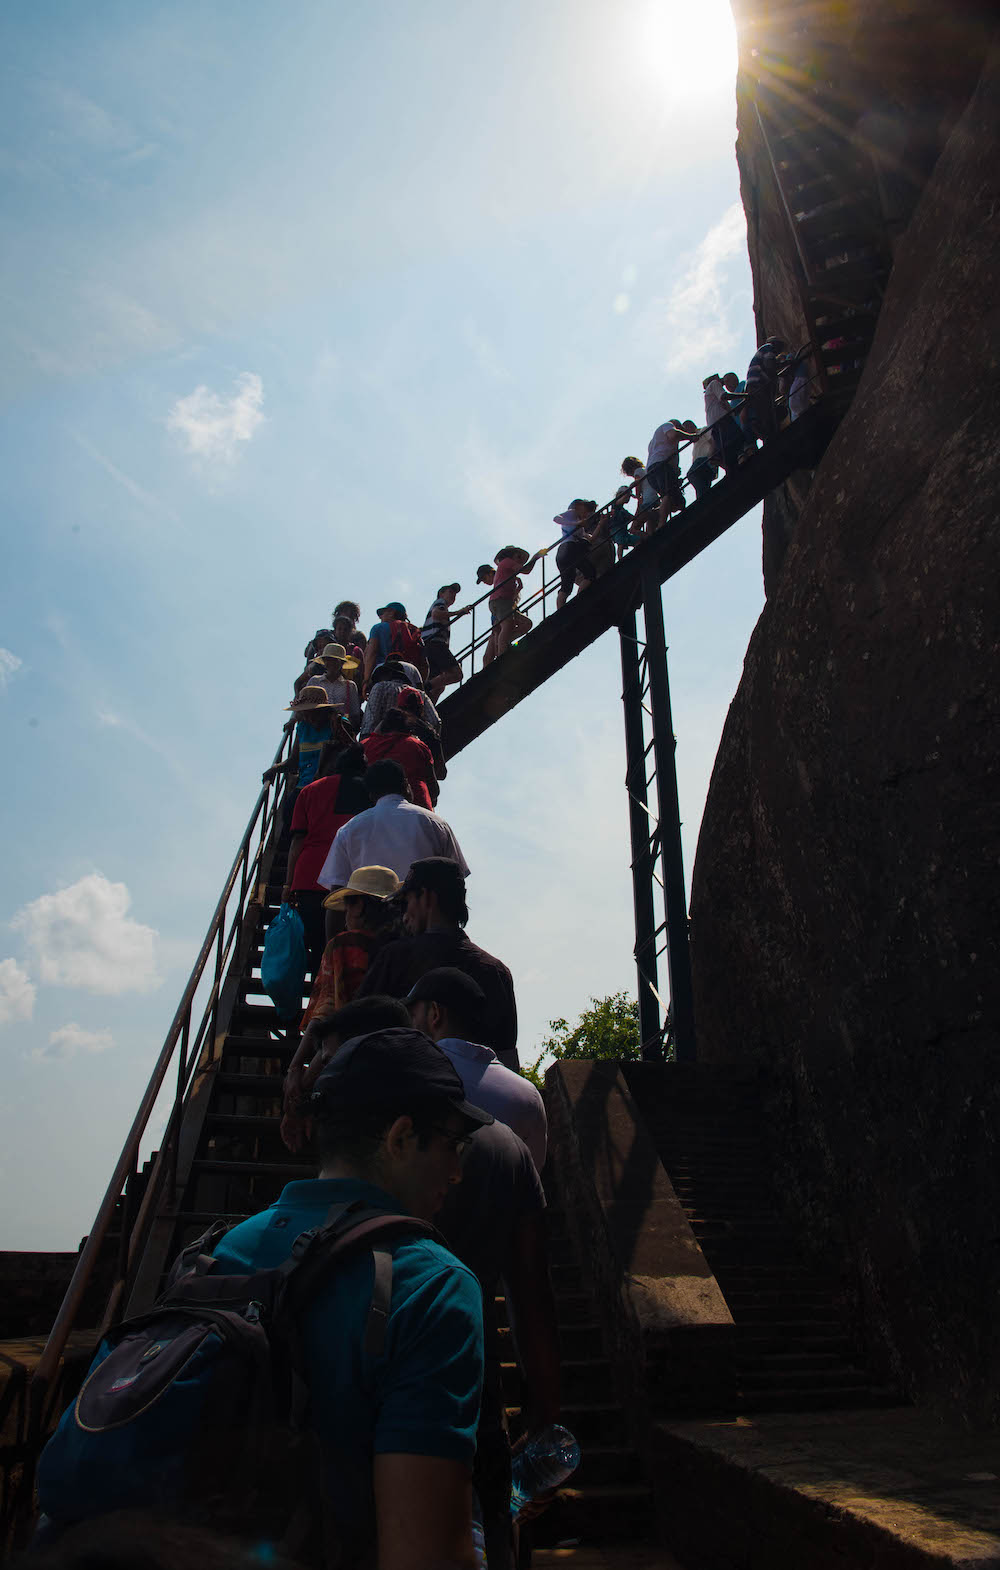 sigiriya-lion-rock-staircase-climb-difficulty-buddhist-shrine-claws-travel-asia-sri-lanka-buddha-drinks-fanta-jenny-adams